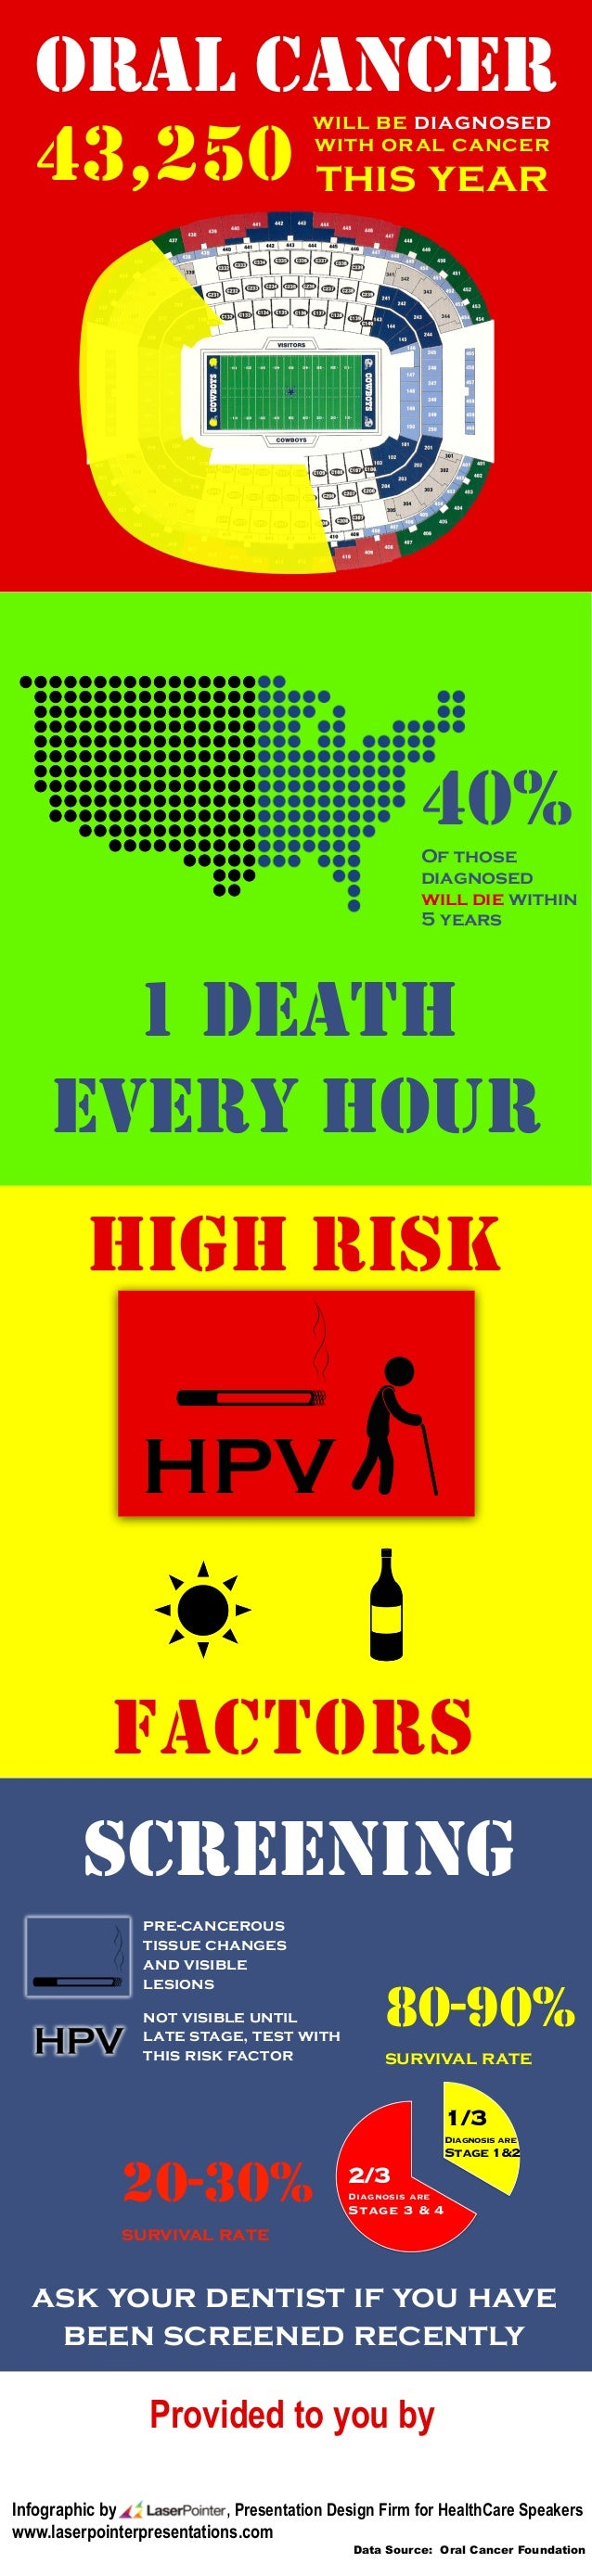 HIGH RISK FACTORS ORAL CANCER 40%Of those diagnosed will die within 5 years 1 DEATH EVERY HOUR 43,250 will be diagnosed wi...